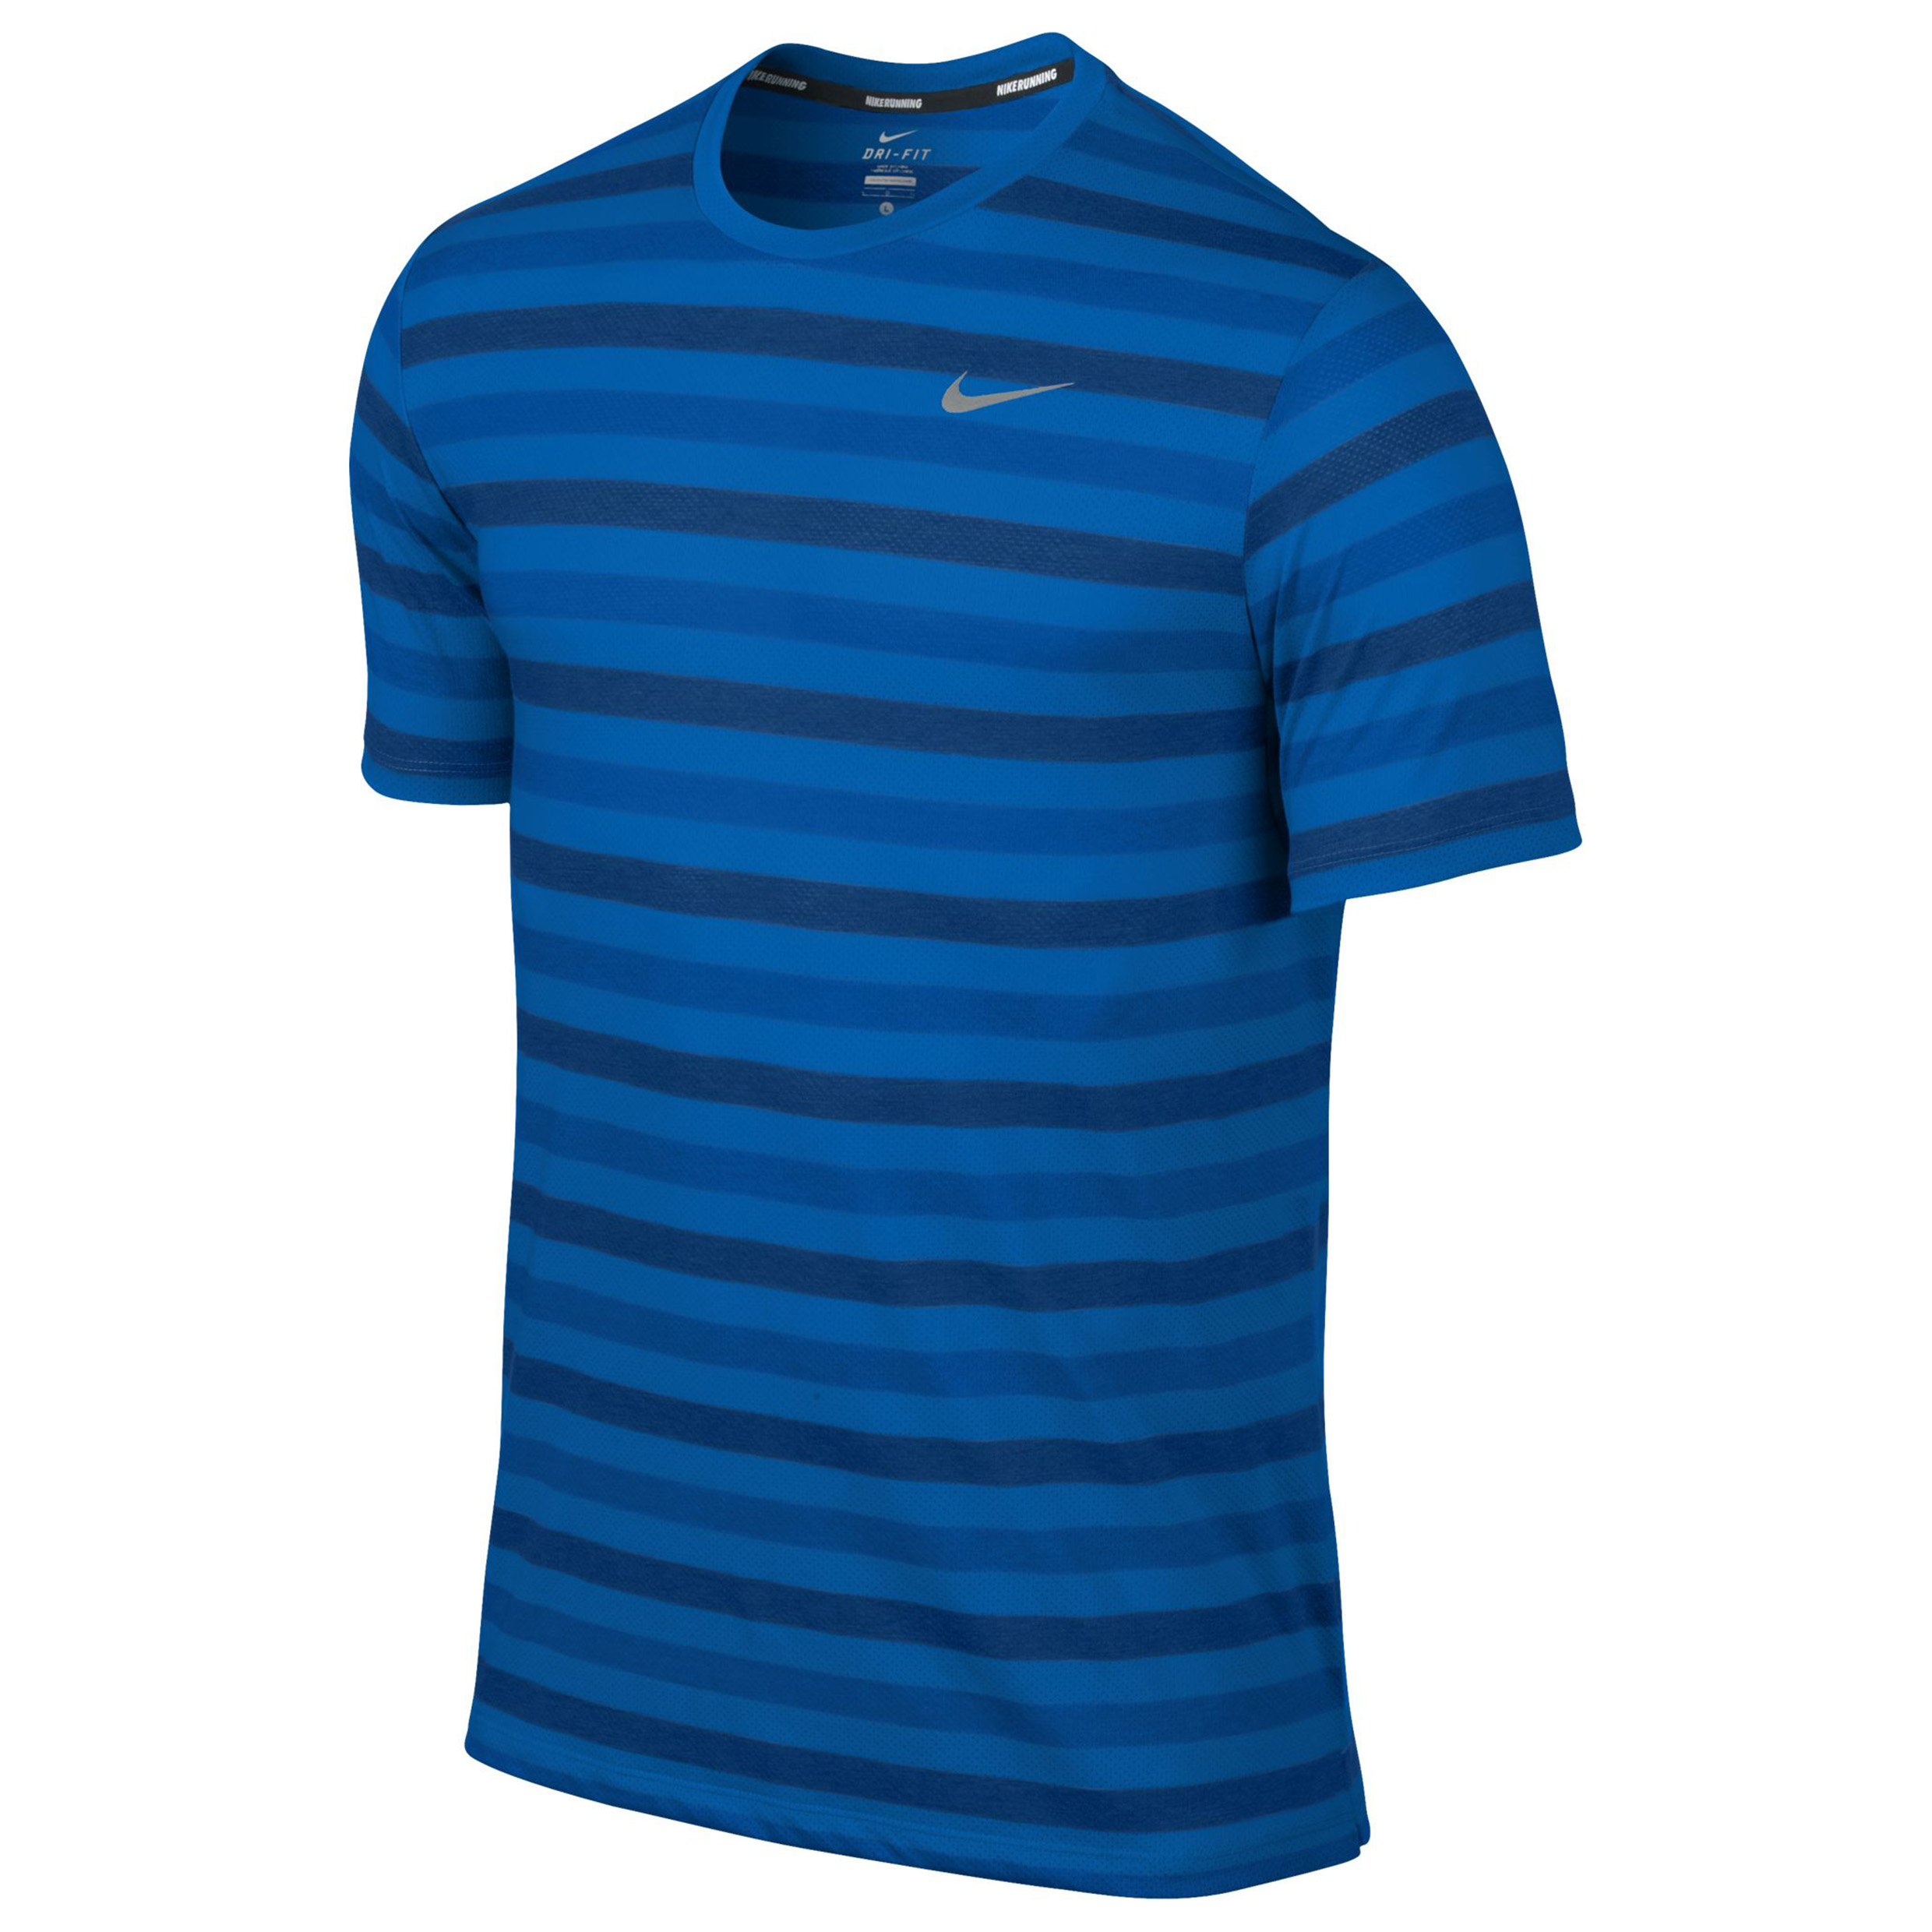 Nike DriFit Touch Tailwind Striped T-Shirt Blue